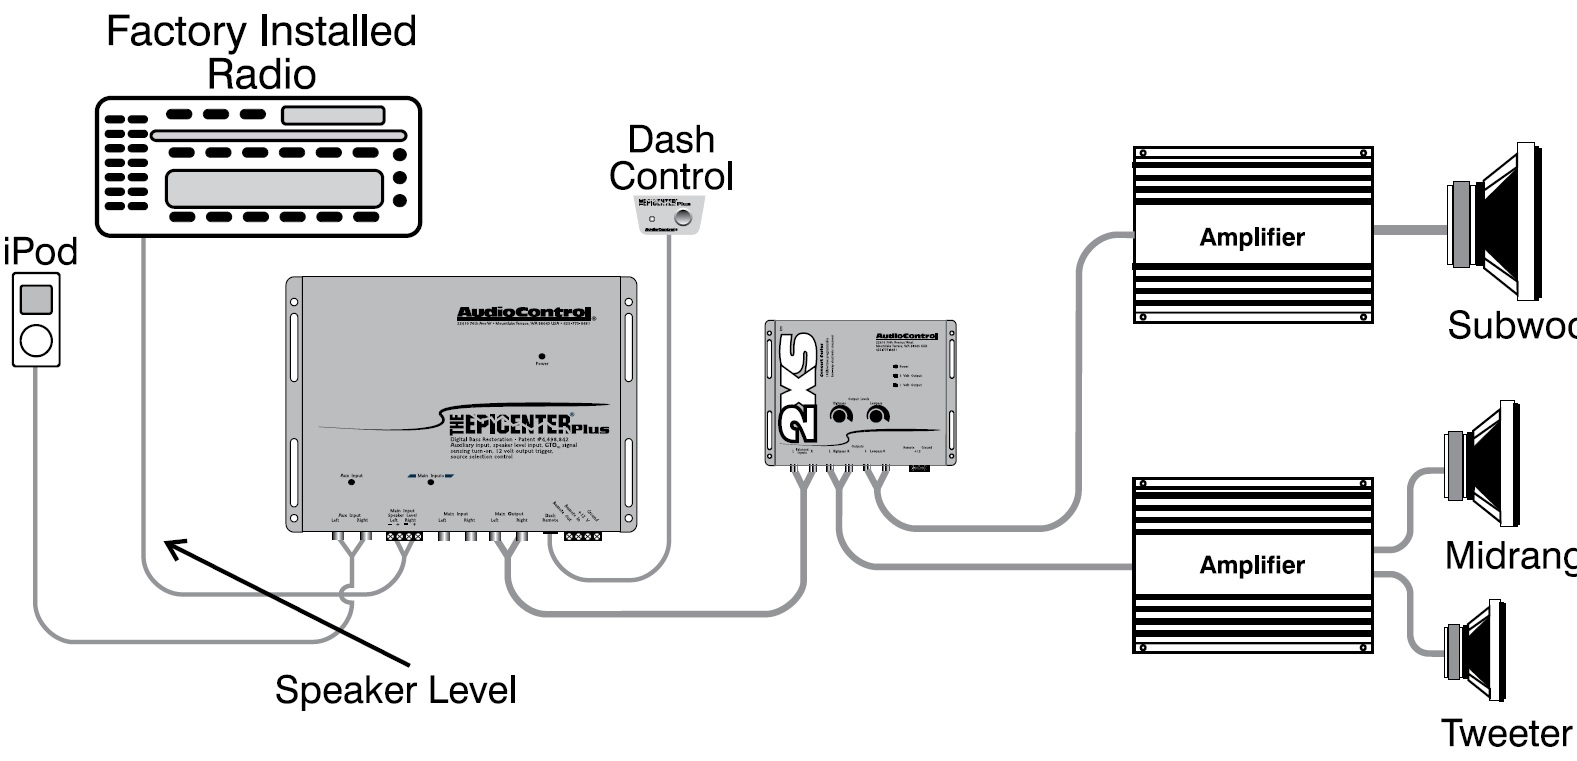 Normal Car Wiring Diagrams Basic Audio Diagram On Typical Subwoofer Application Audiocontrol